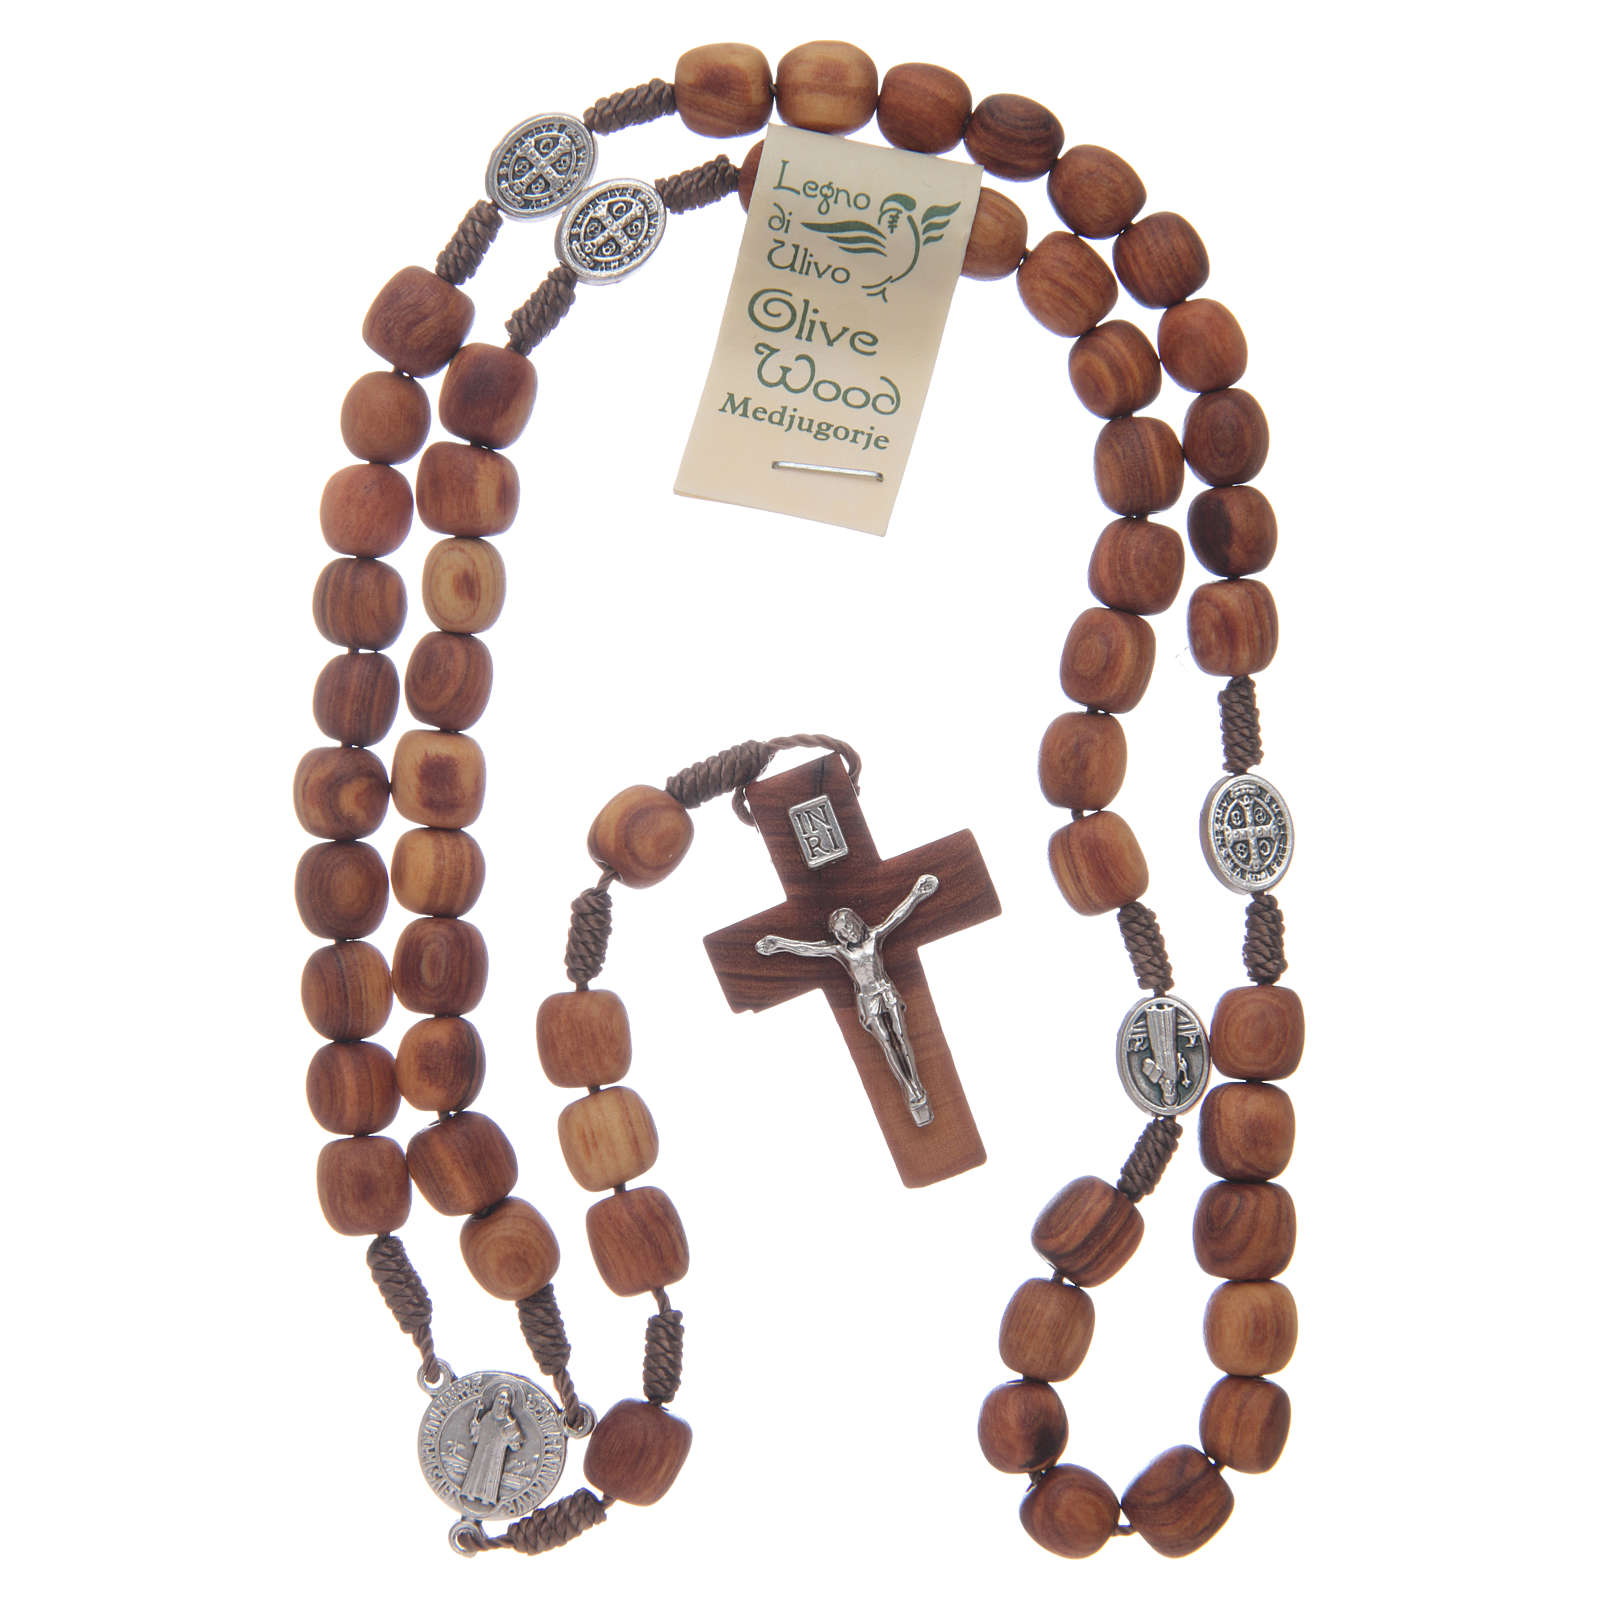 Olive wood Medjugorje rosary with cross 9mm 4